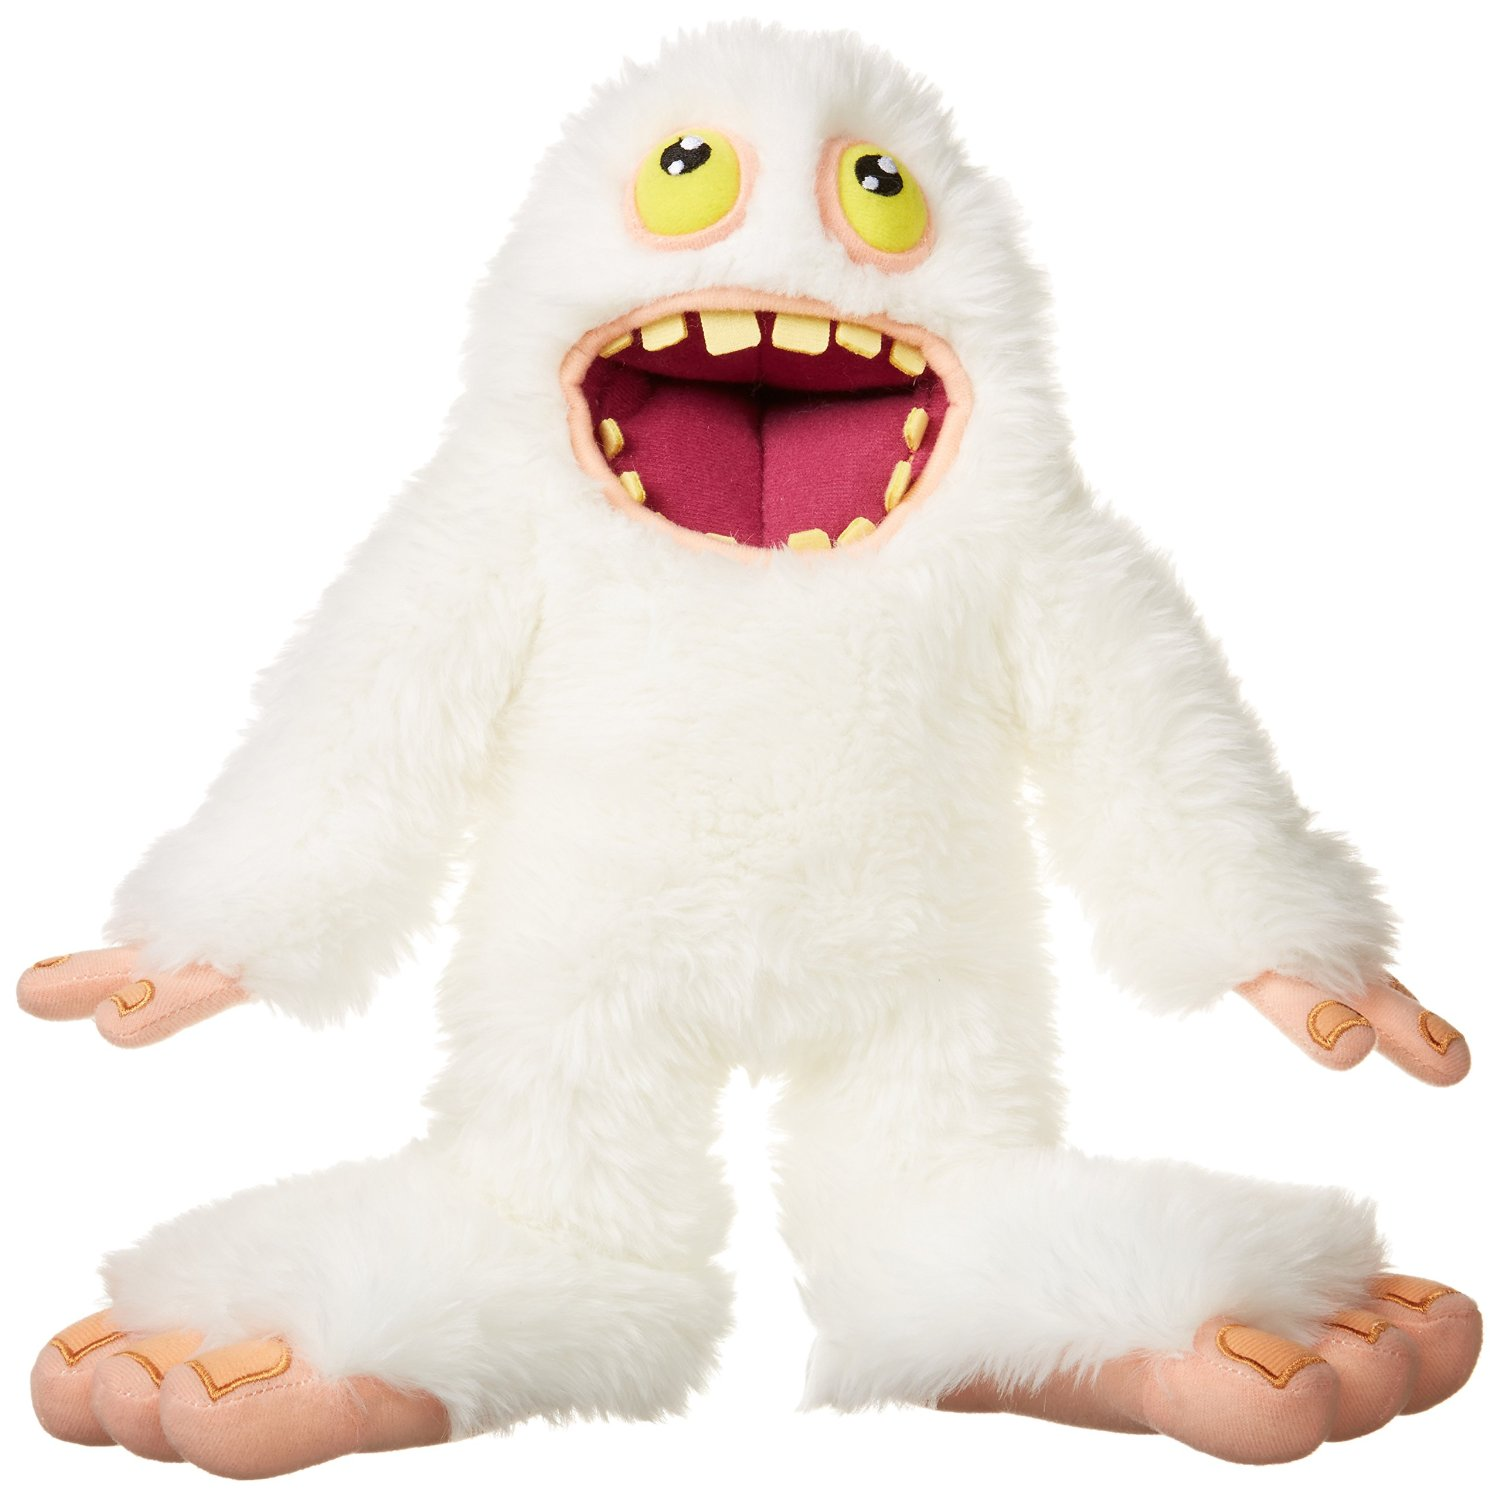 Cuddly Yeti - Fully Customisable Plush